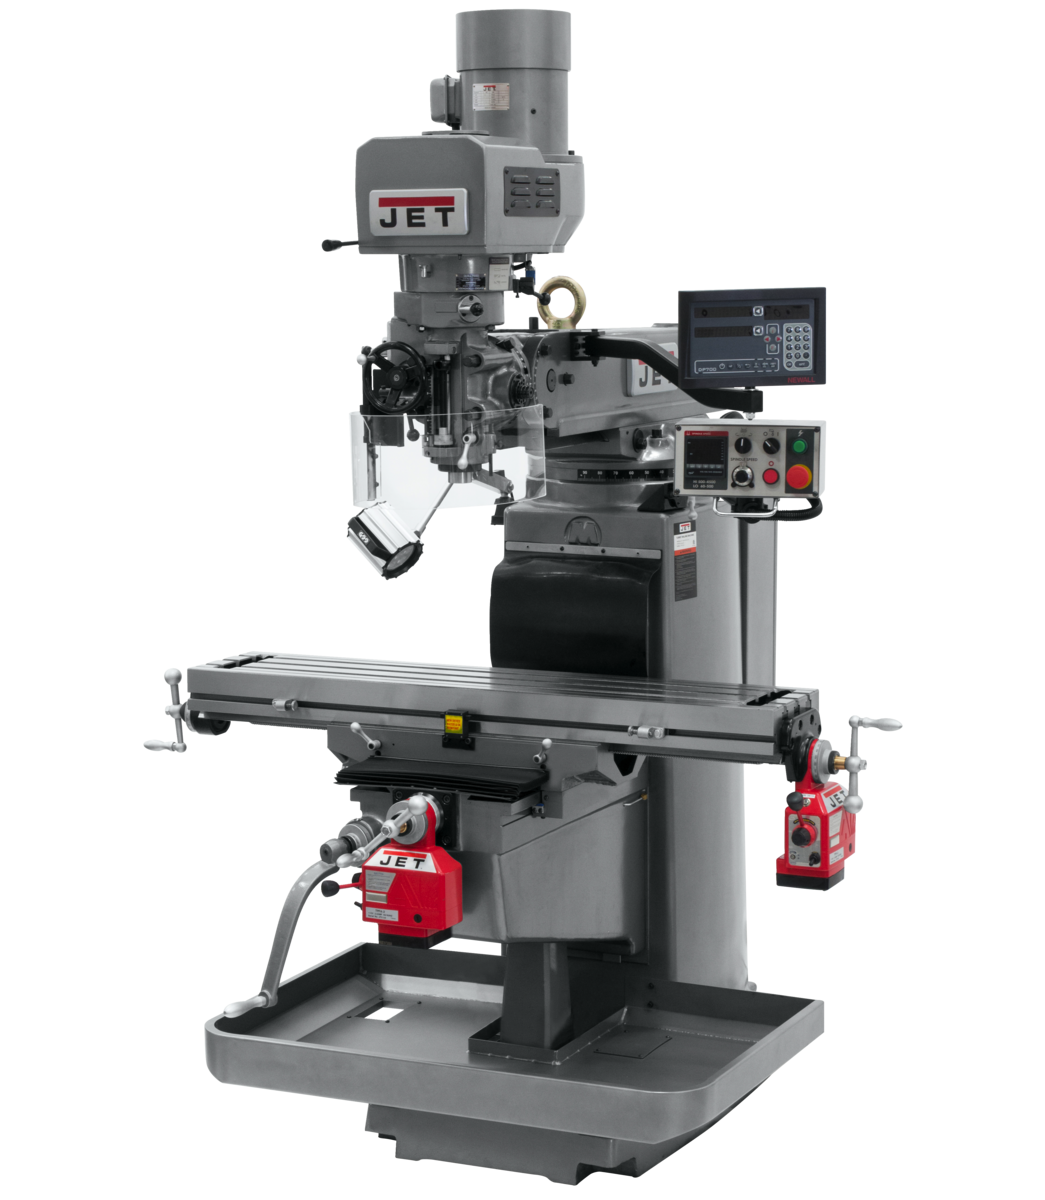 JTM-1050EVS2/230 Mill With 3-Axis Newall DP700 DRO (Quill) With X and Y-Axis Powerfeeds